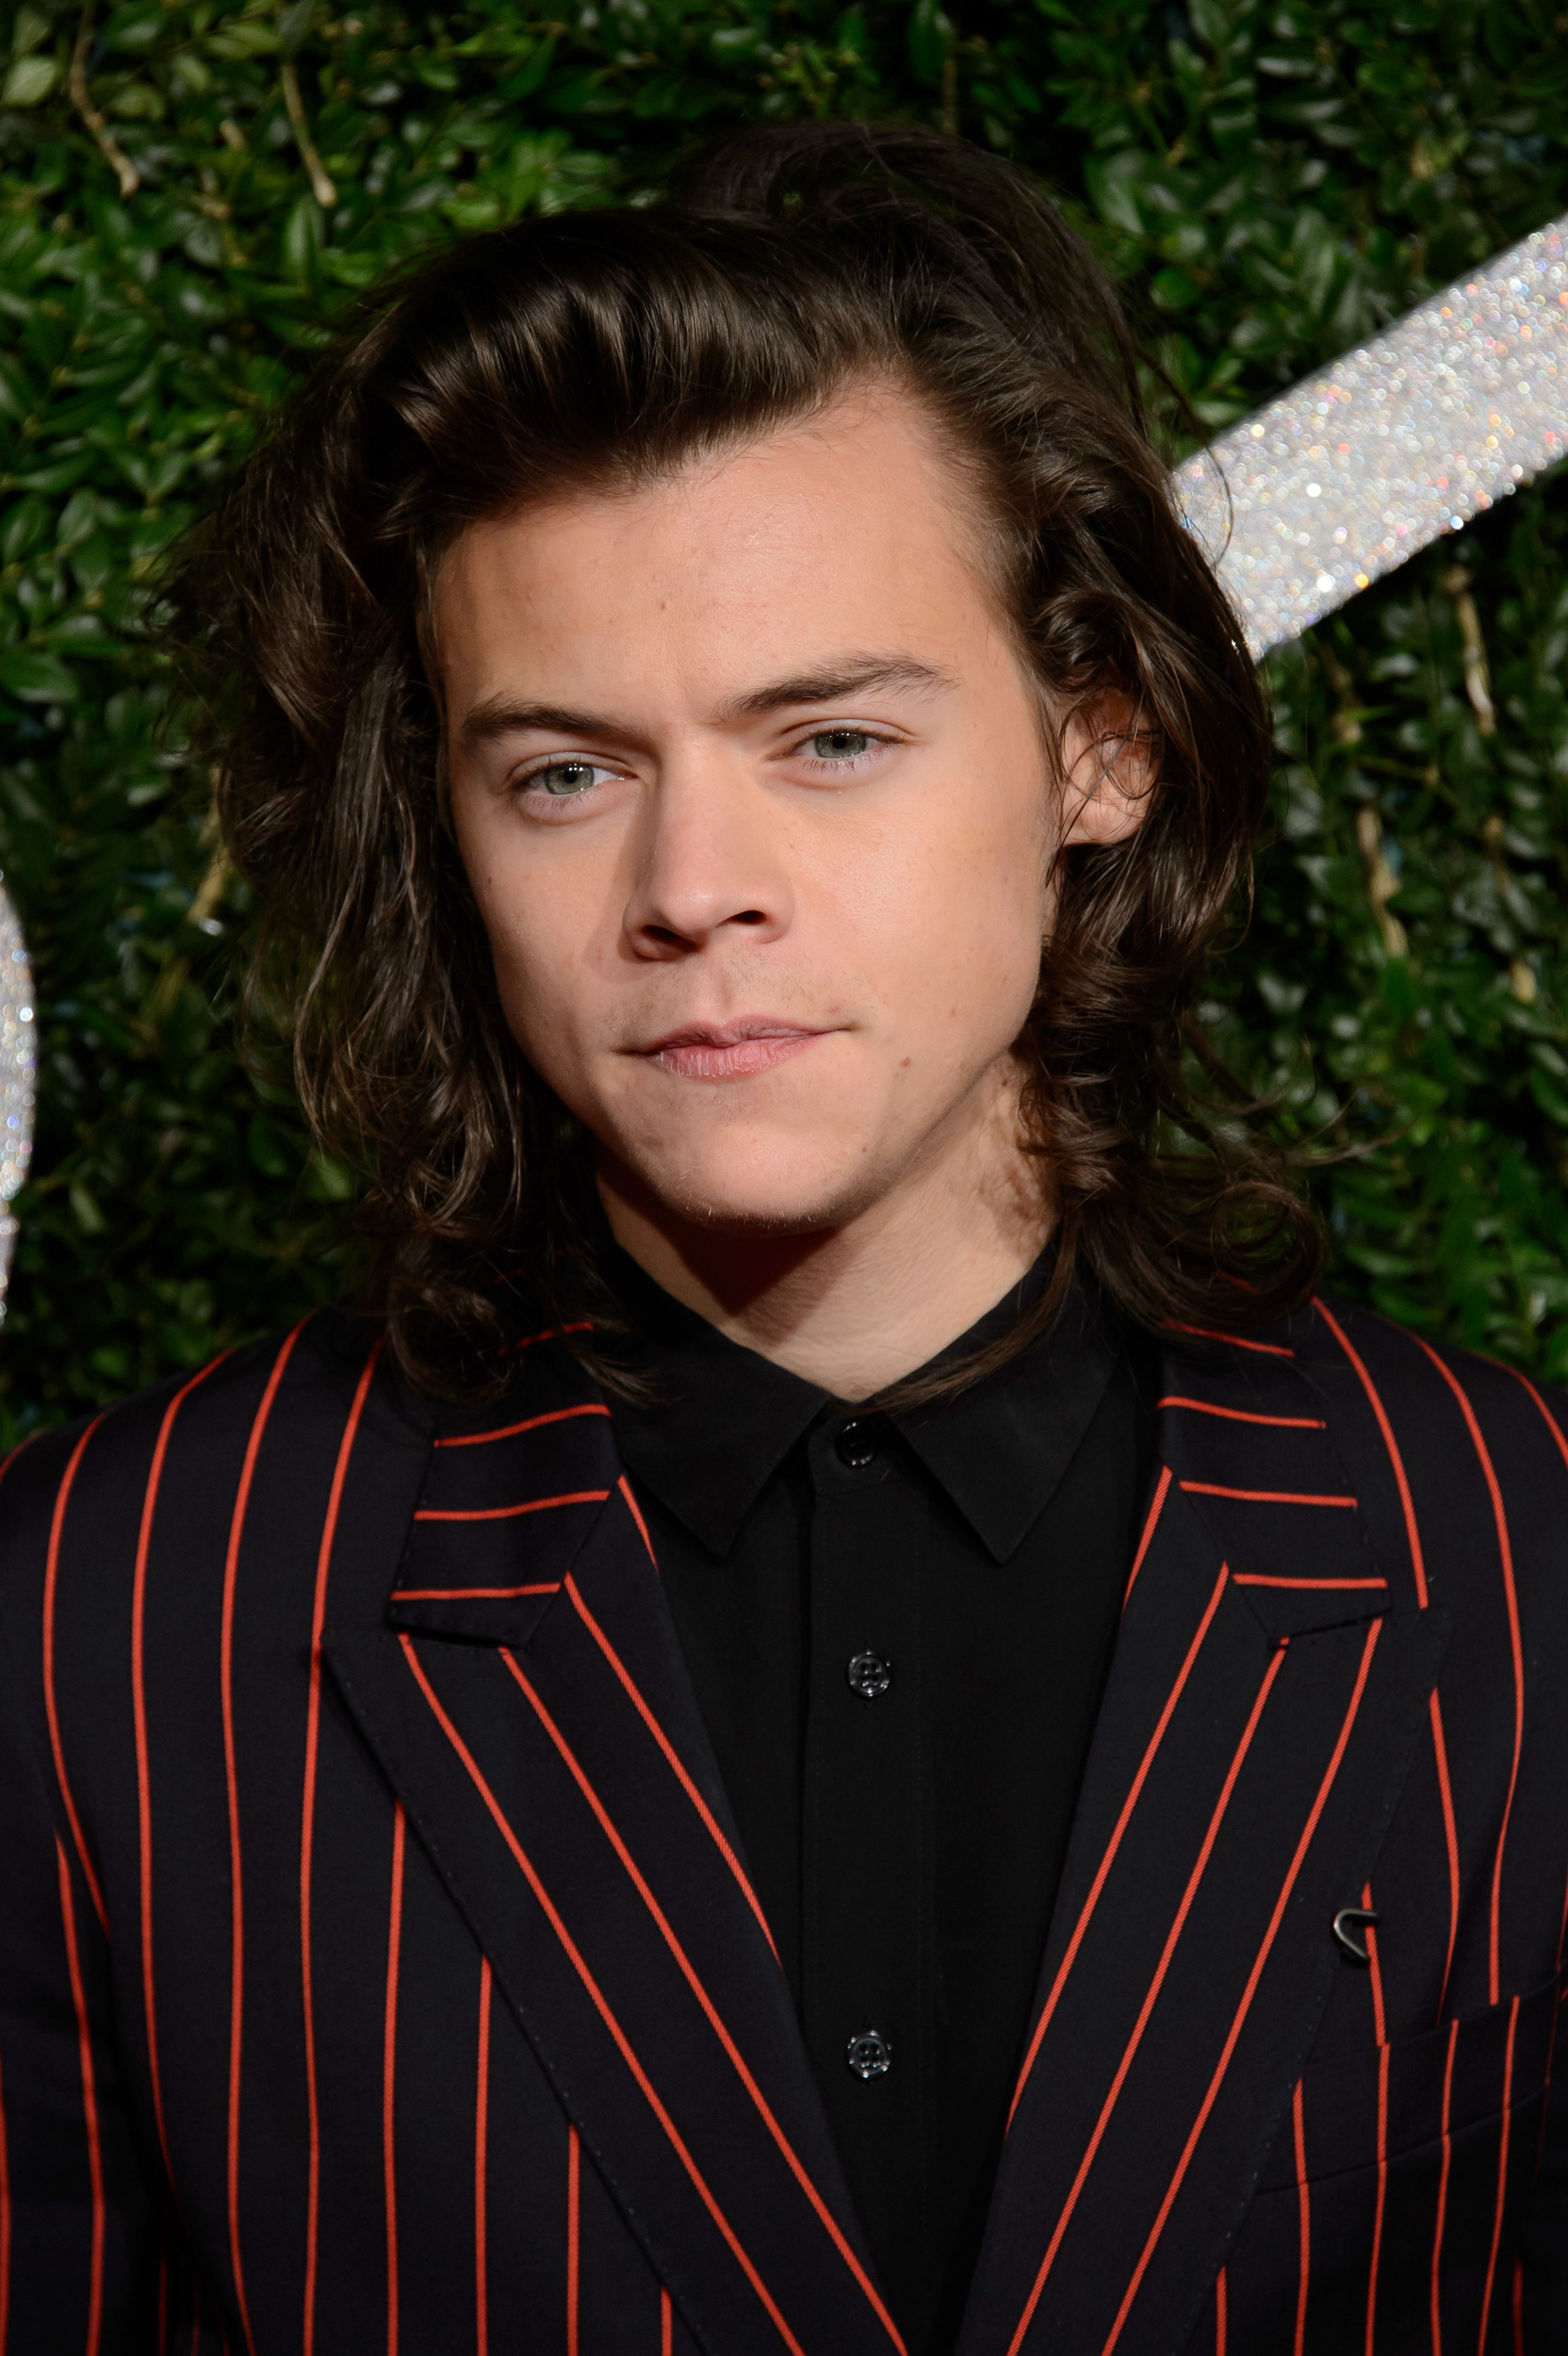 Groovy Harry Styles39 2015 Love Predictions Getting Back Together With Short Hairstyles Gunalazisus